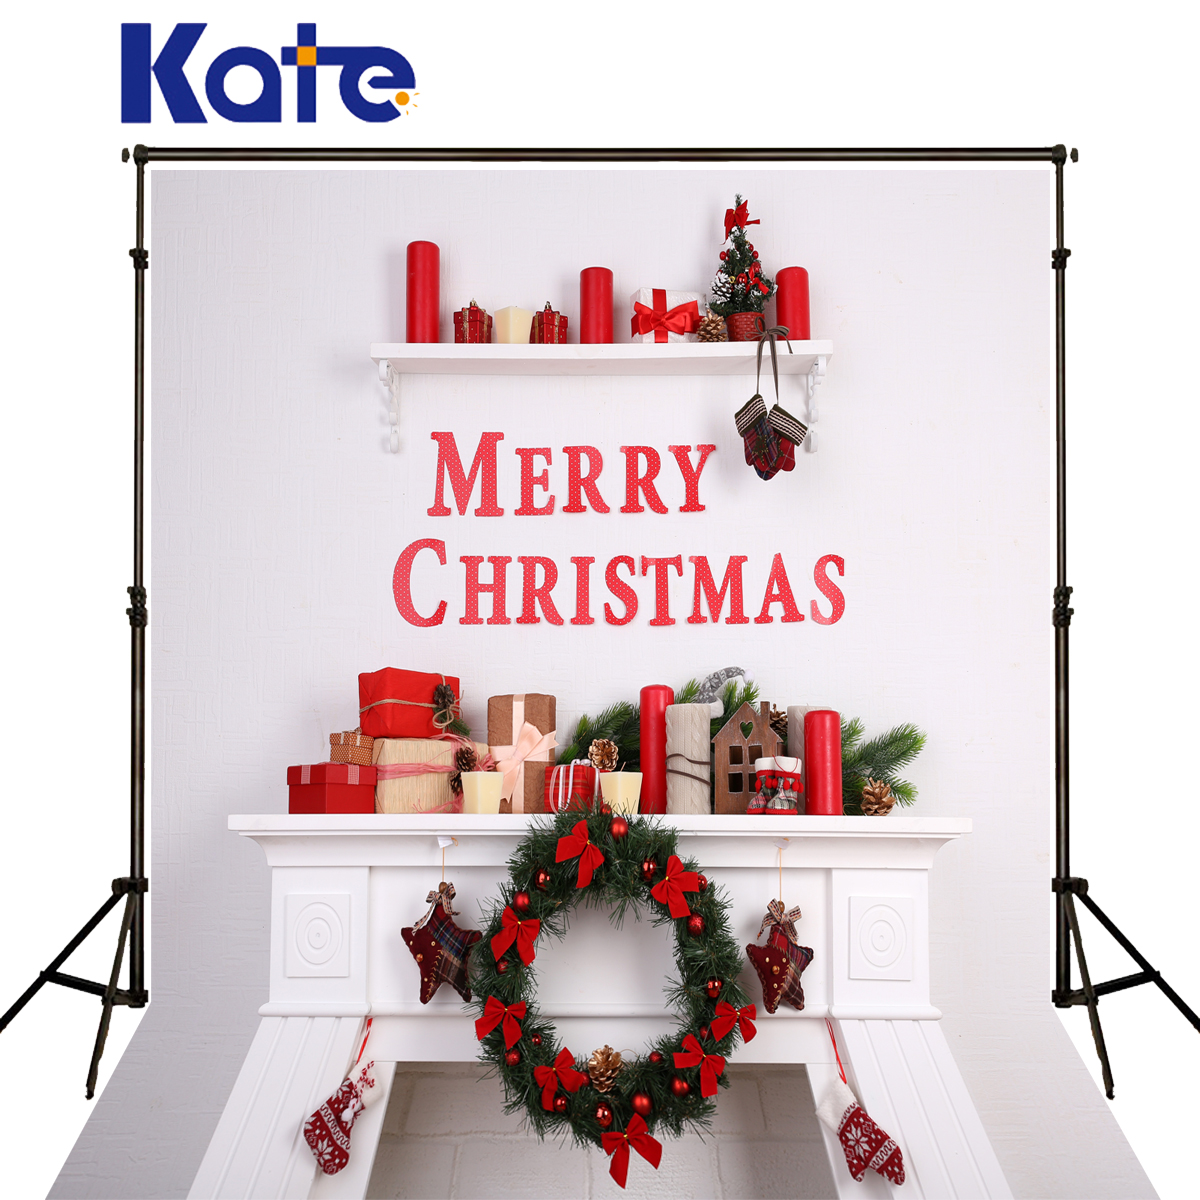 Kate Backgrounds Photography Christmas Red Candle Glove Background Photography Fireplace Stove Bow Fundo Fotografico Natal new arrival background fundo meadow flowers gift 300cm 200cm about 10ft 6 5ft width backgrounds lk 3858